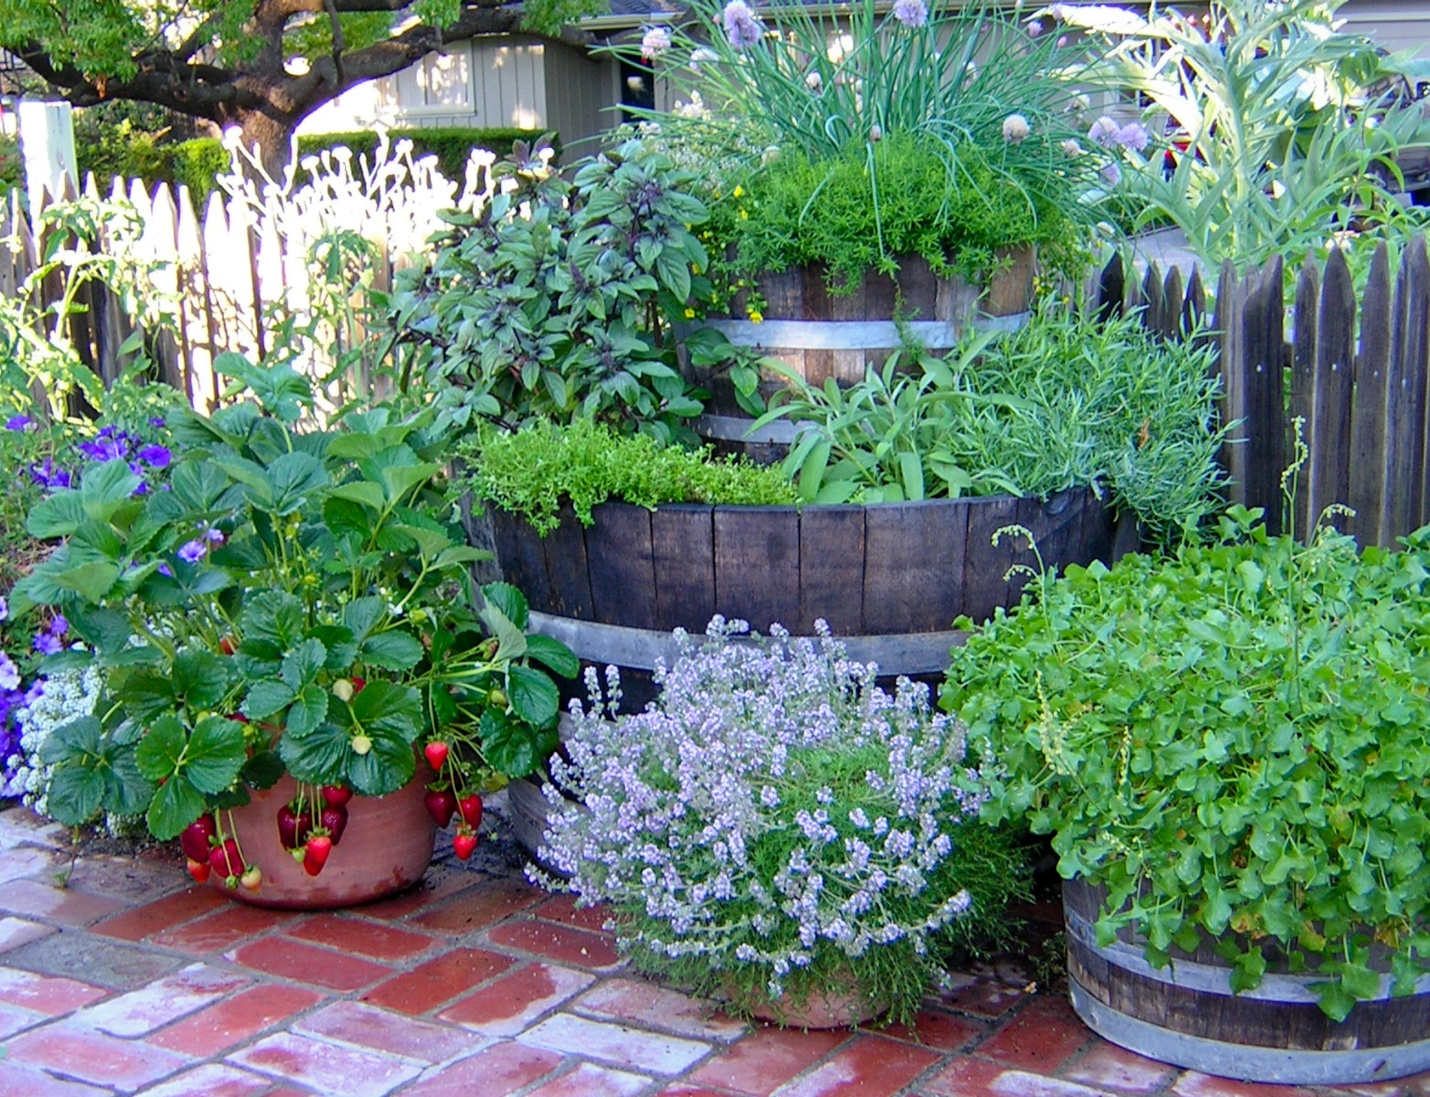 All my favorite culinary herbs can be grown in a few recycled wine barrels. Notice that one is a smaller one nested on top of a large one. Here Thai basil, chives, savory, tarragon, sage, French sorrel, and thyme are grouped together and watered by drip irrigation on an automatic timer that comes on twice a day for 5 minutes all summer. A bonus container of strawberries is on the same system. (Photo courtesy of Rosalind Creasy)